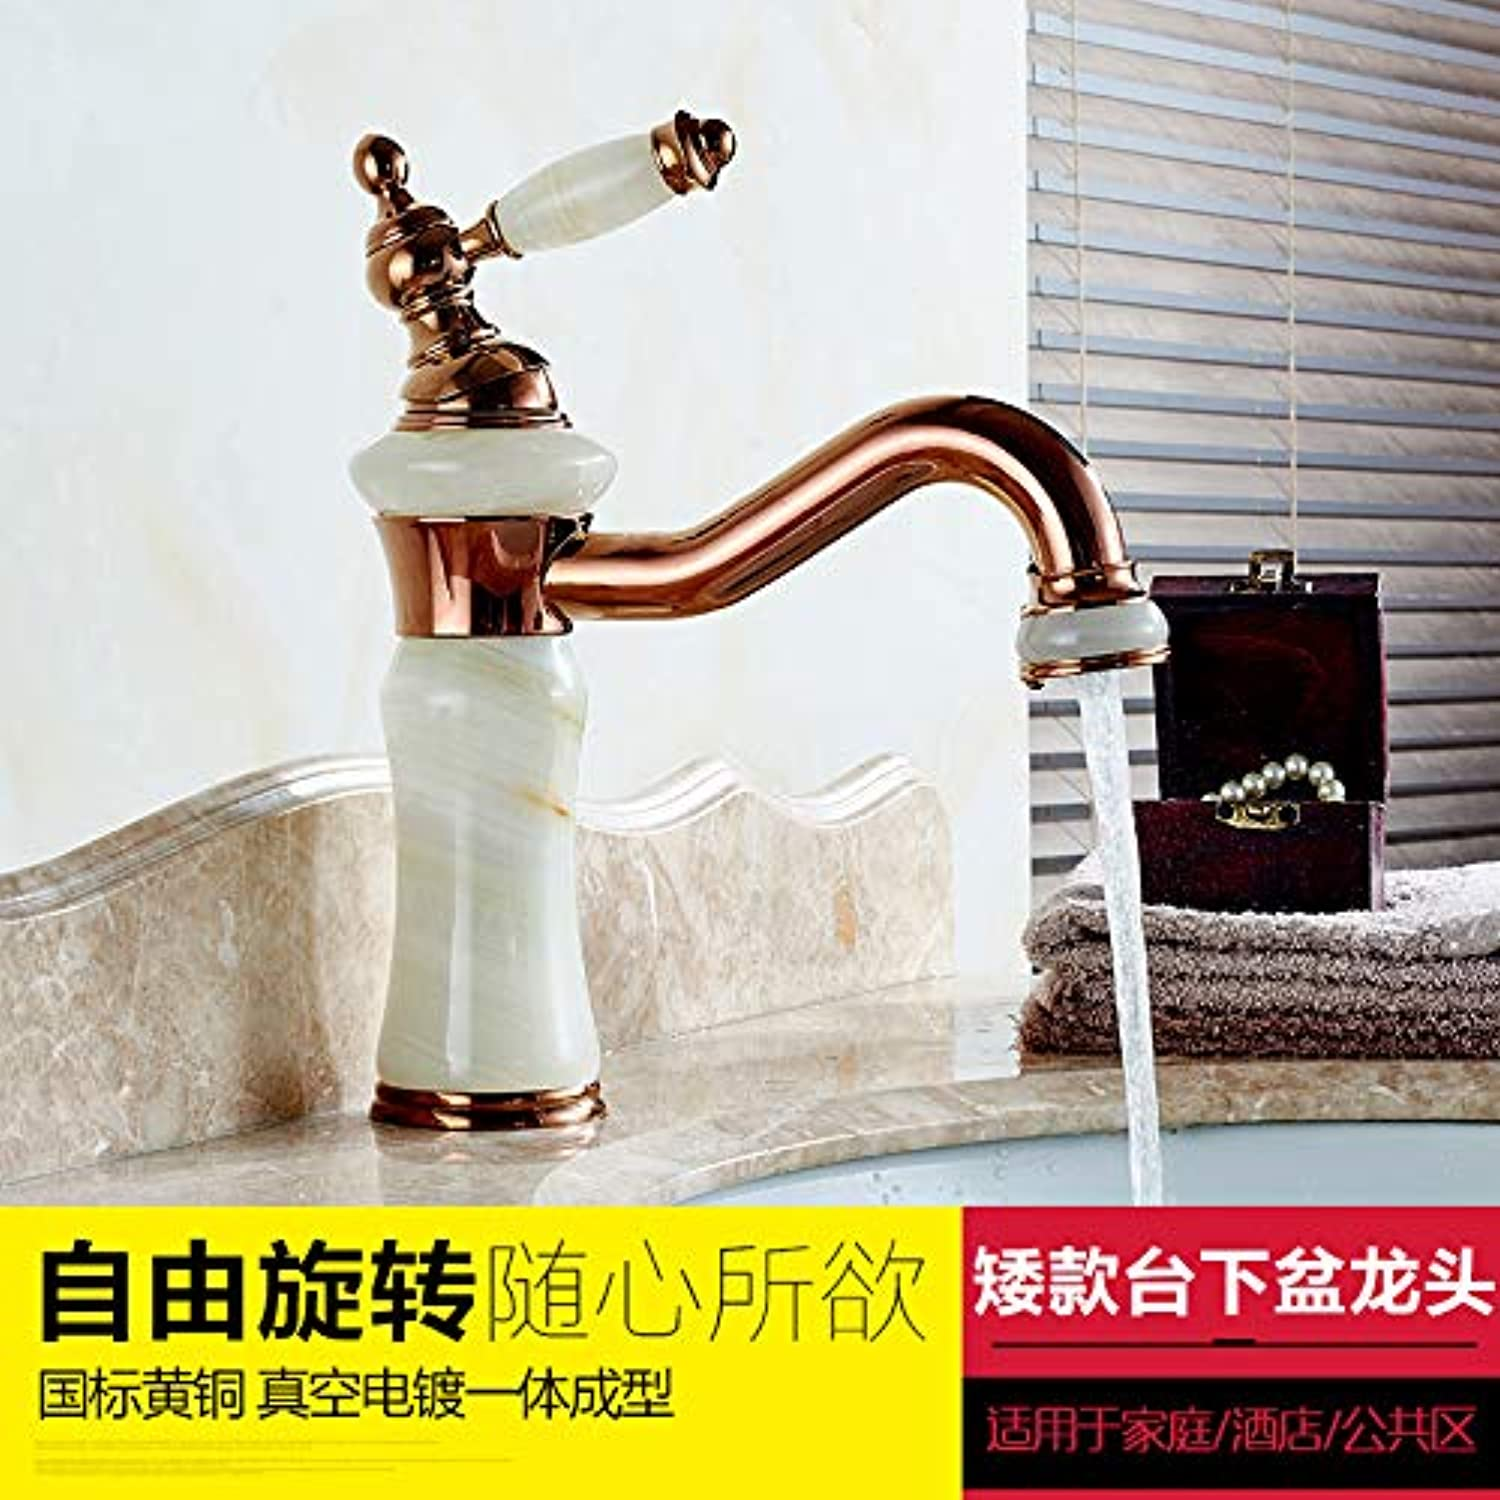 LHbox Basin Mixer Tap Bathroom Sink Faucet Golden Jade faucets basin of hot and cold continental surface basin jade faucets full copper wash basin mixer taps, low-B Commercial Bathroom Sink Taps .